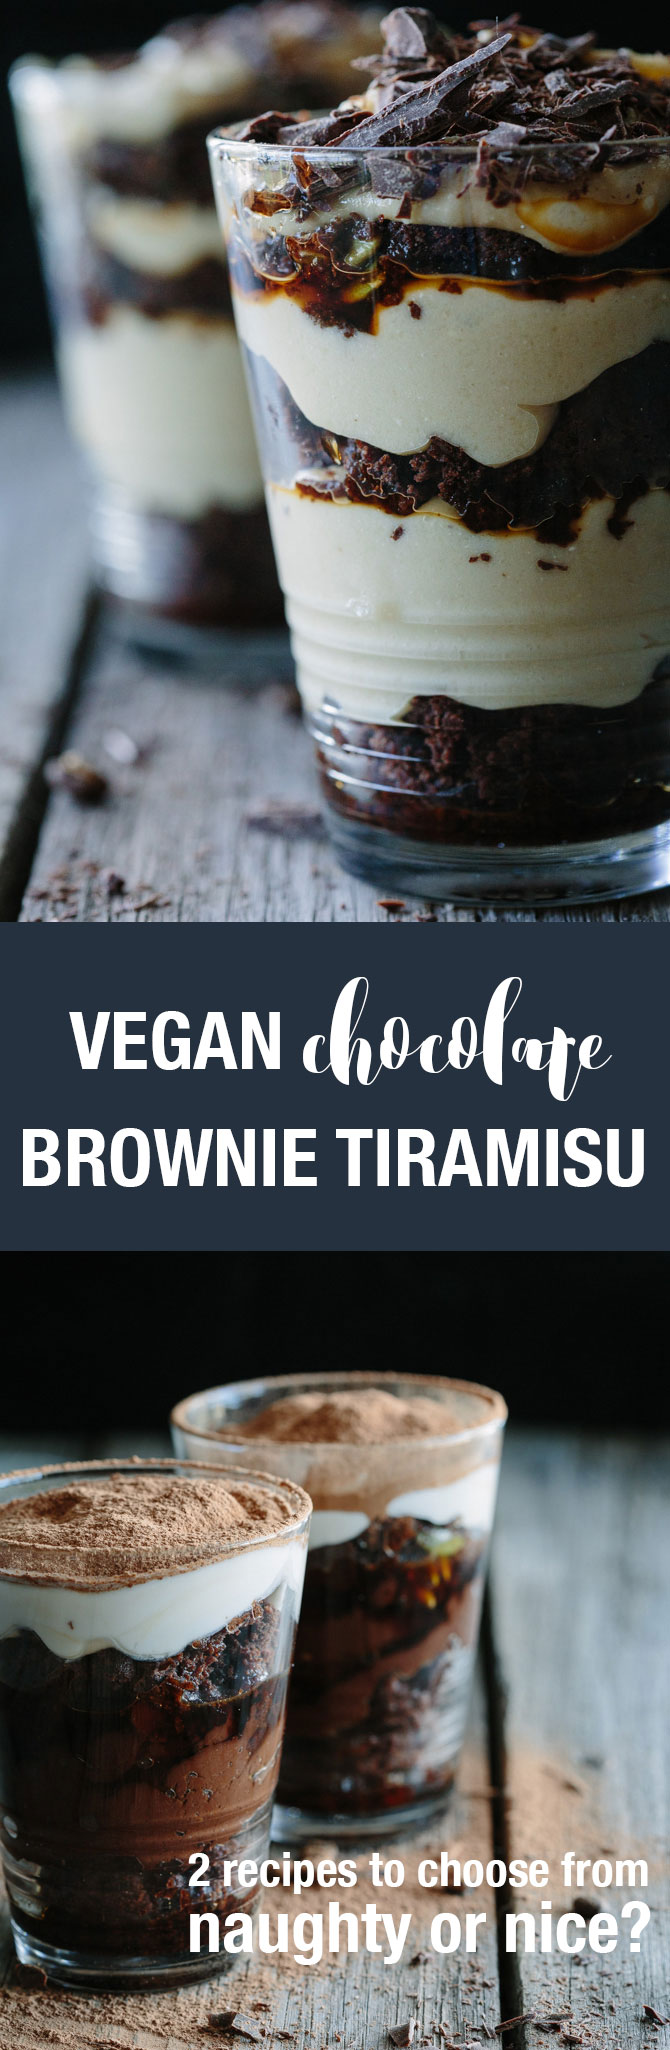 Decadent Chocolate Brownie Tiramisu Two Ways